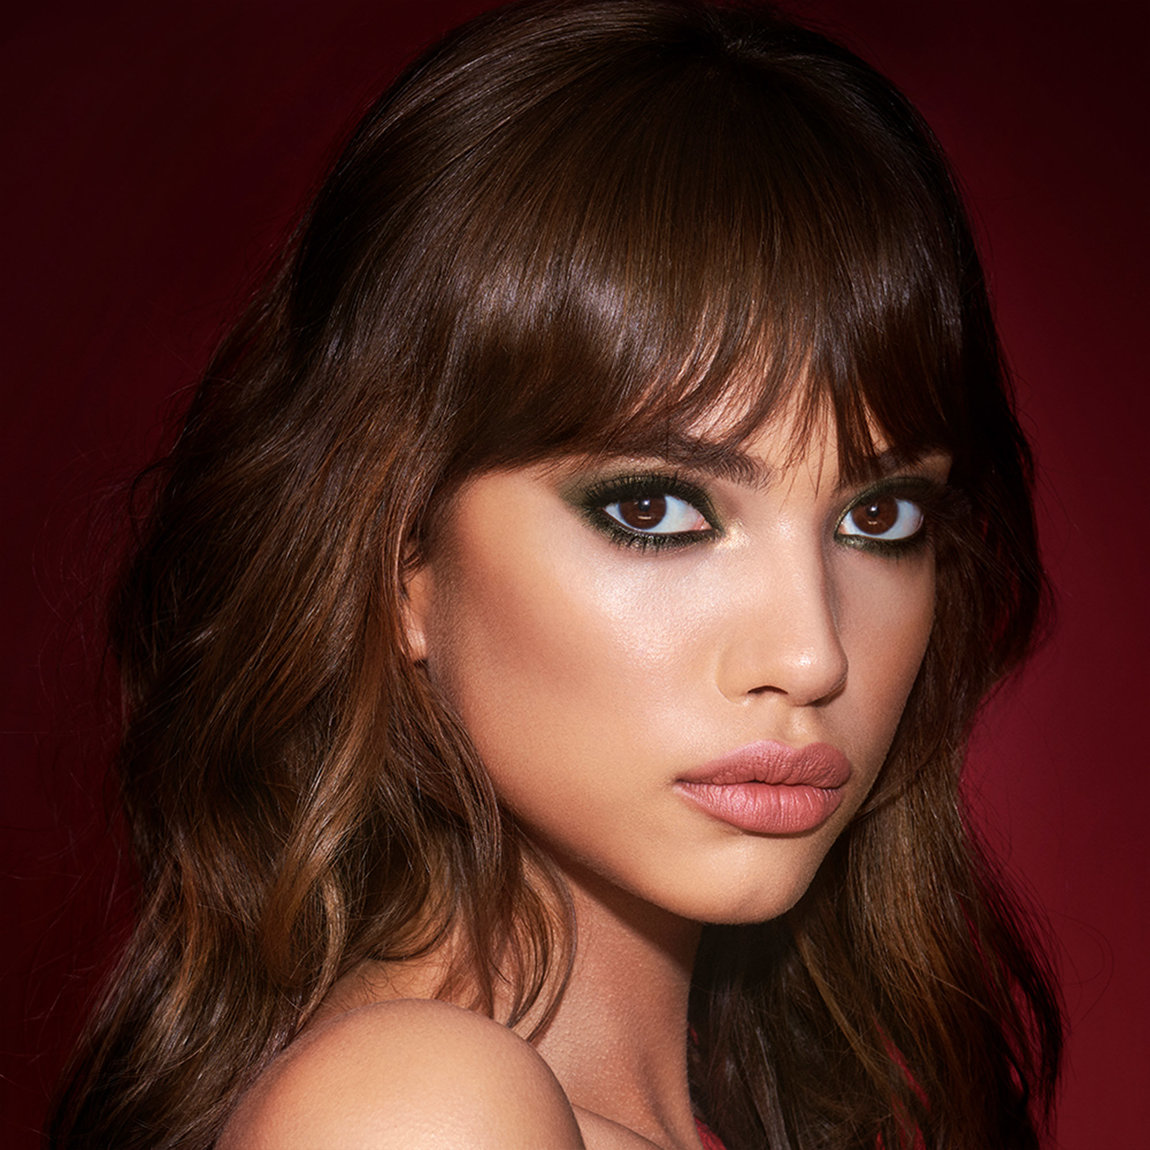 Charlotte Tilbury Get the Look The Rebel product swatch.